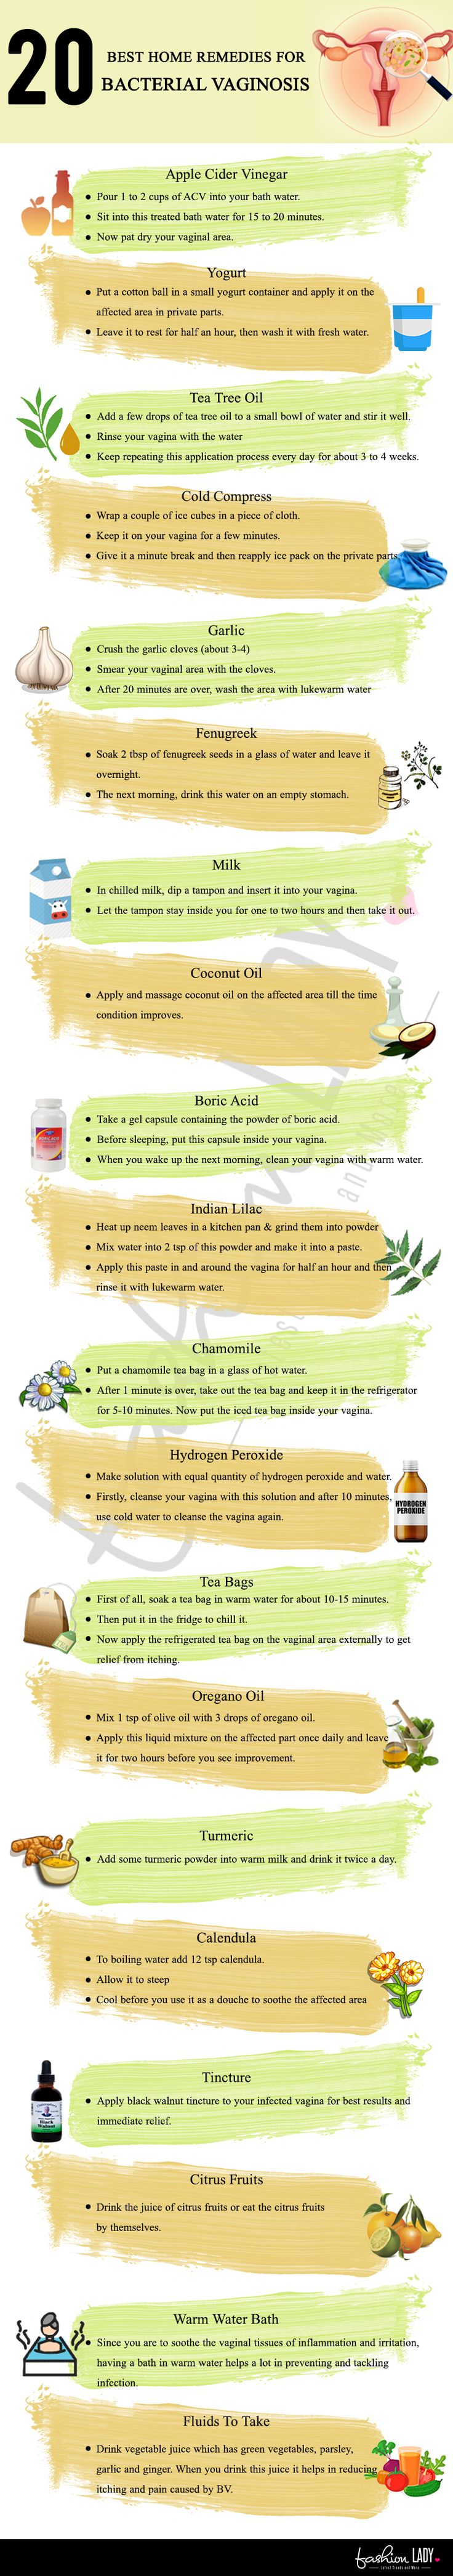 20 Best Home Remedies for Bacterial Vaginosis